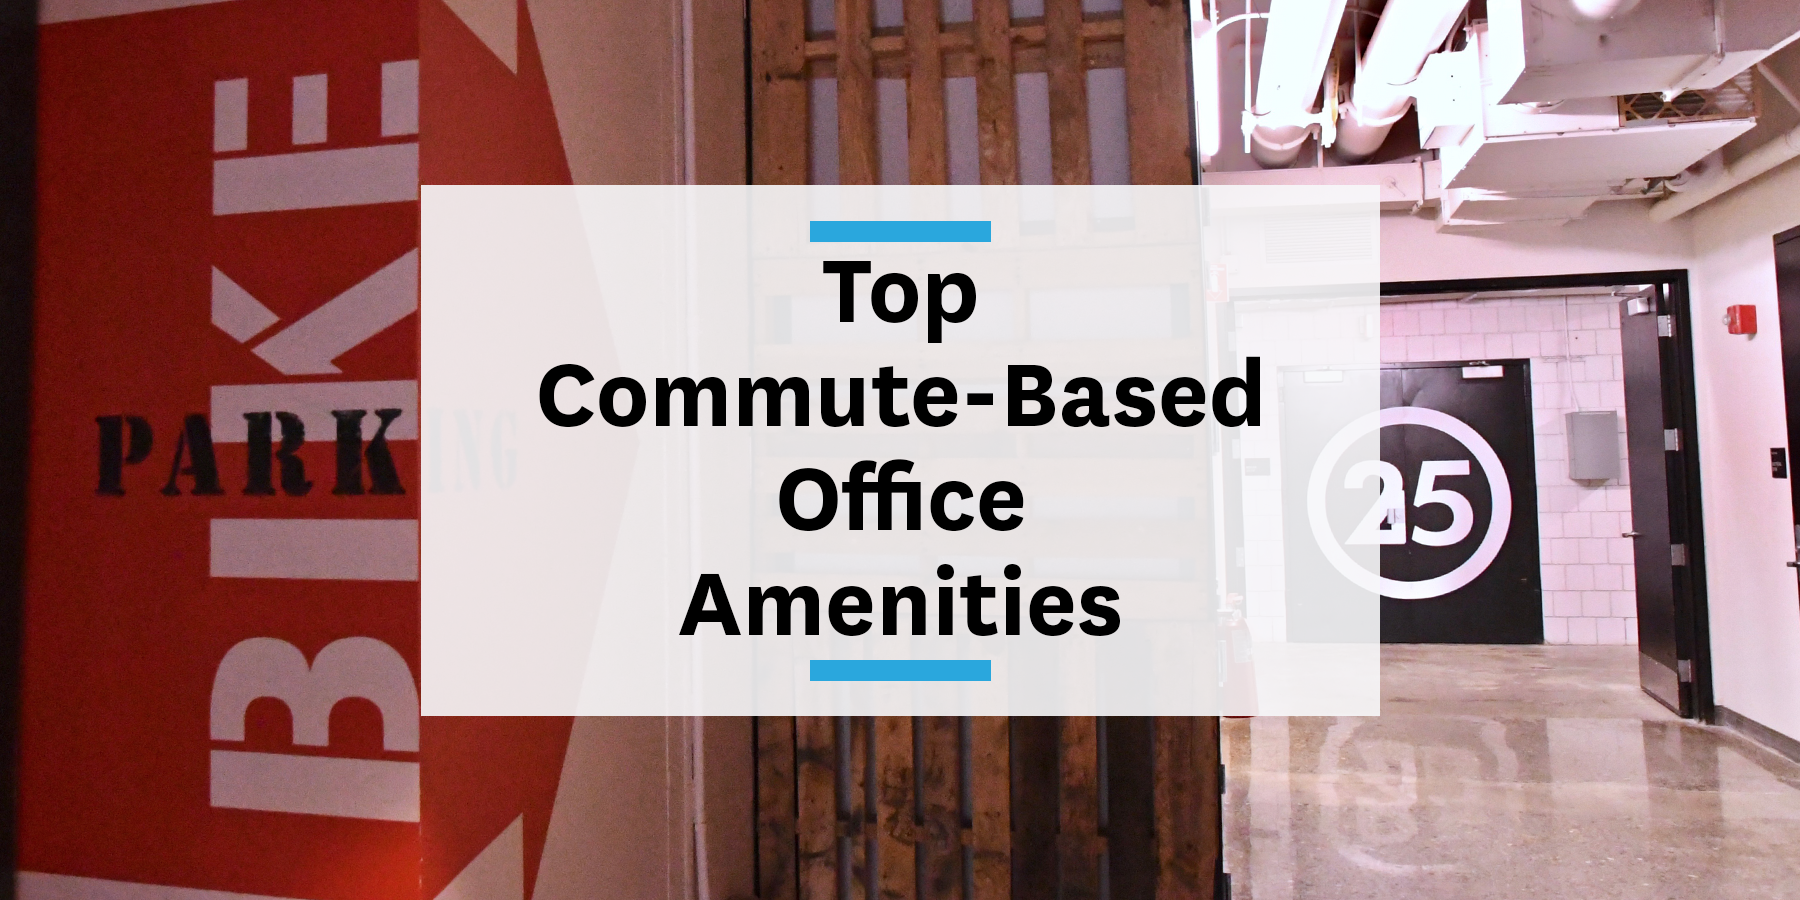 Top commute-based office amenities to enhance your commute management strategy